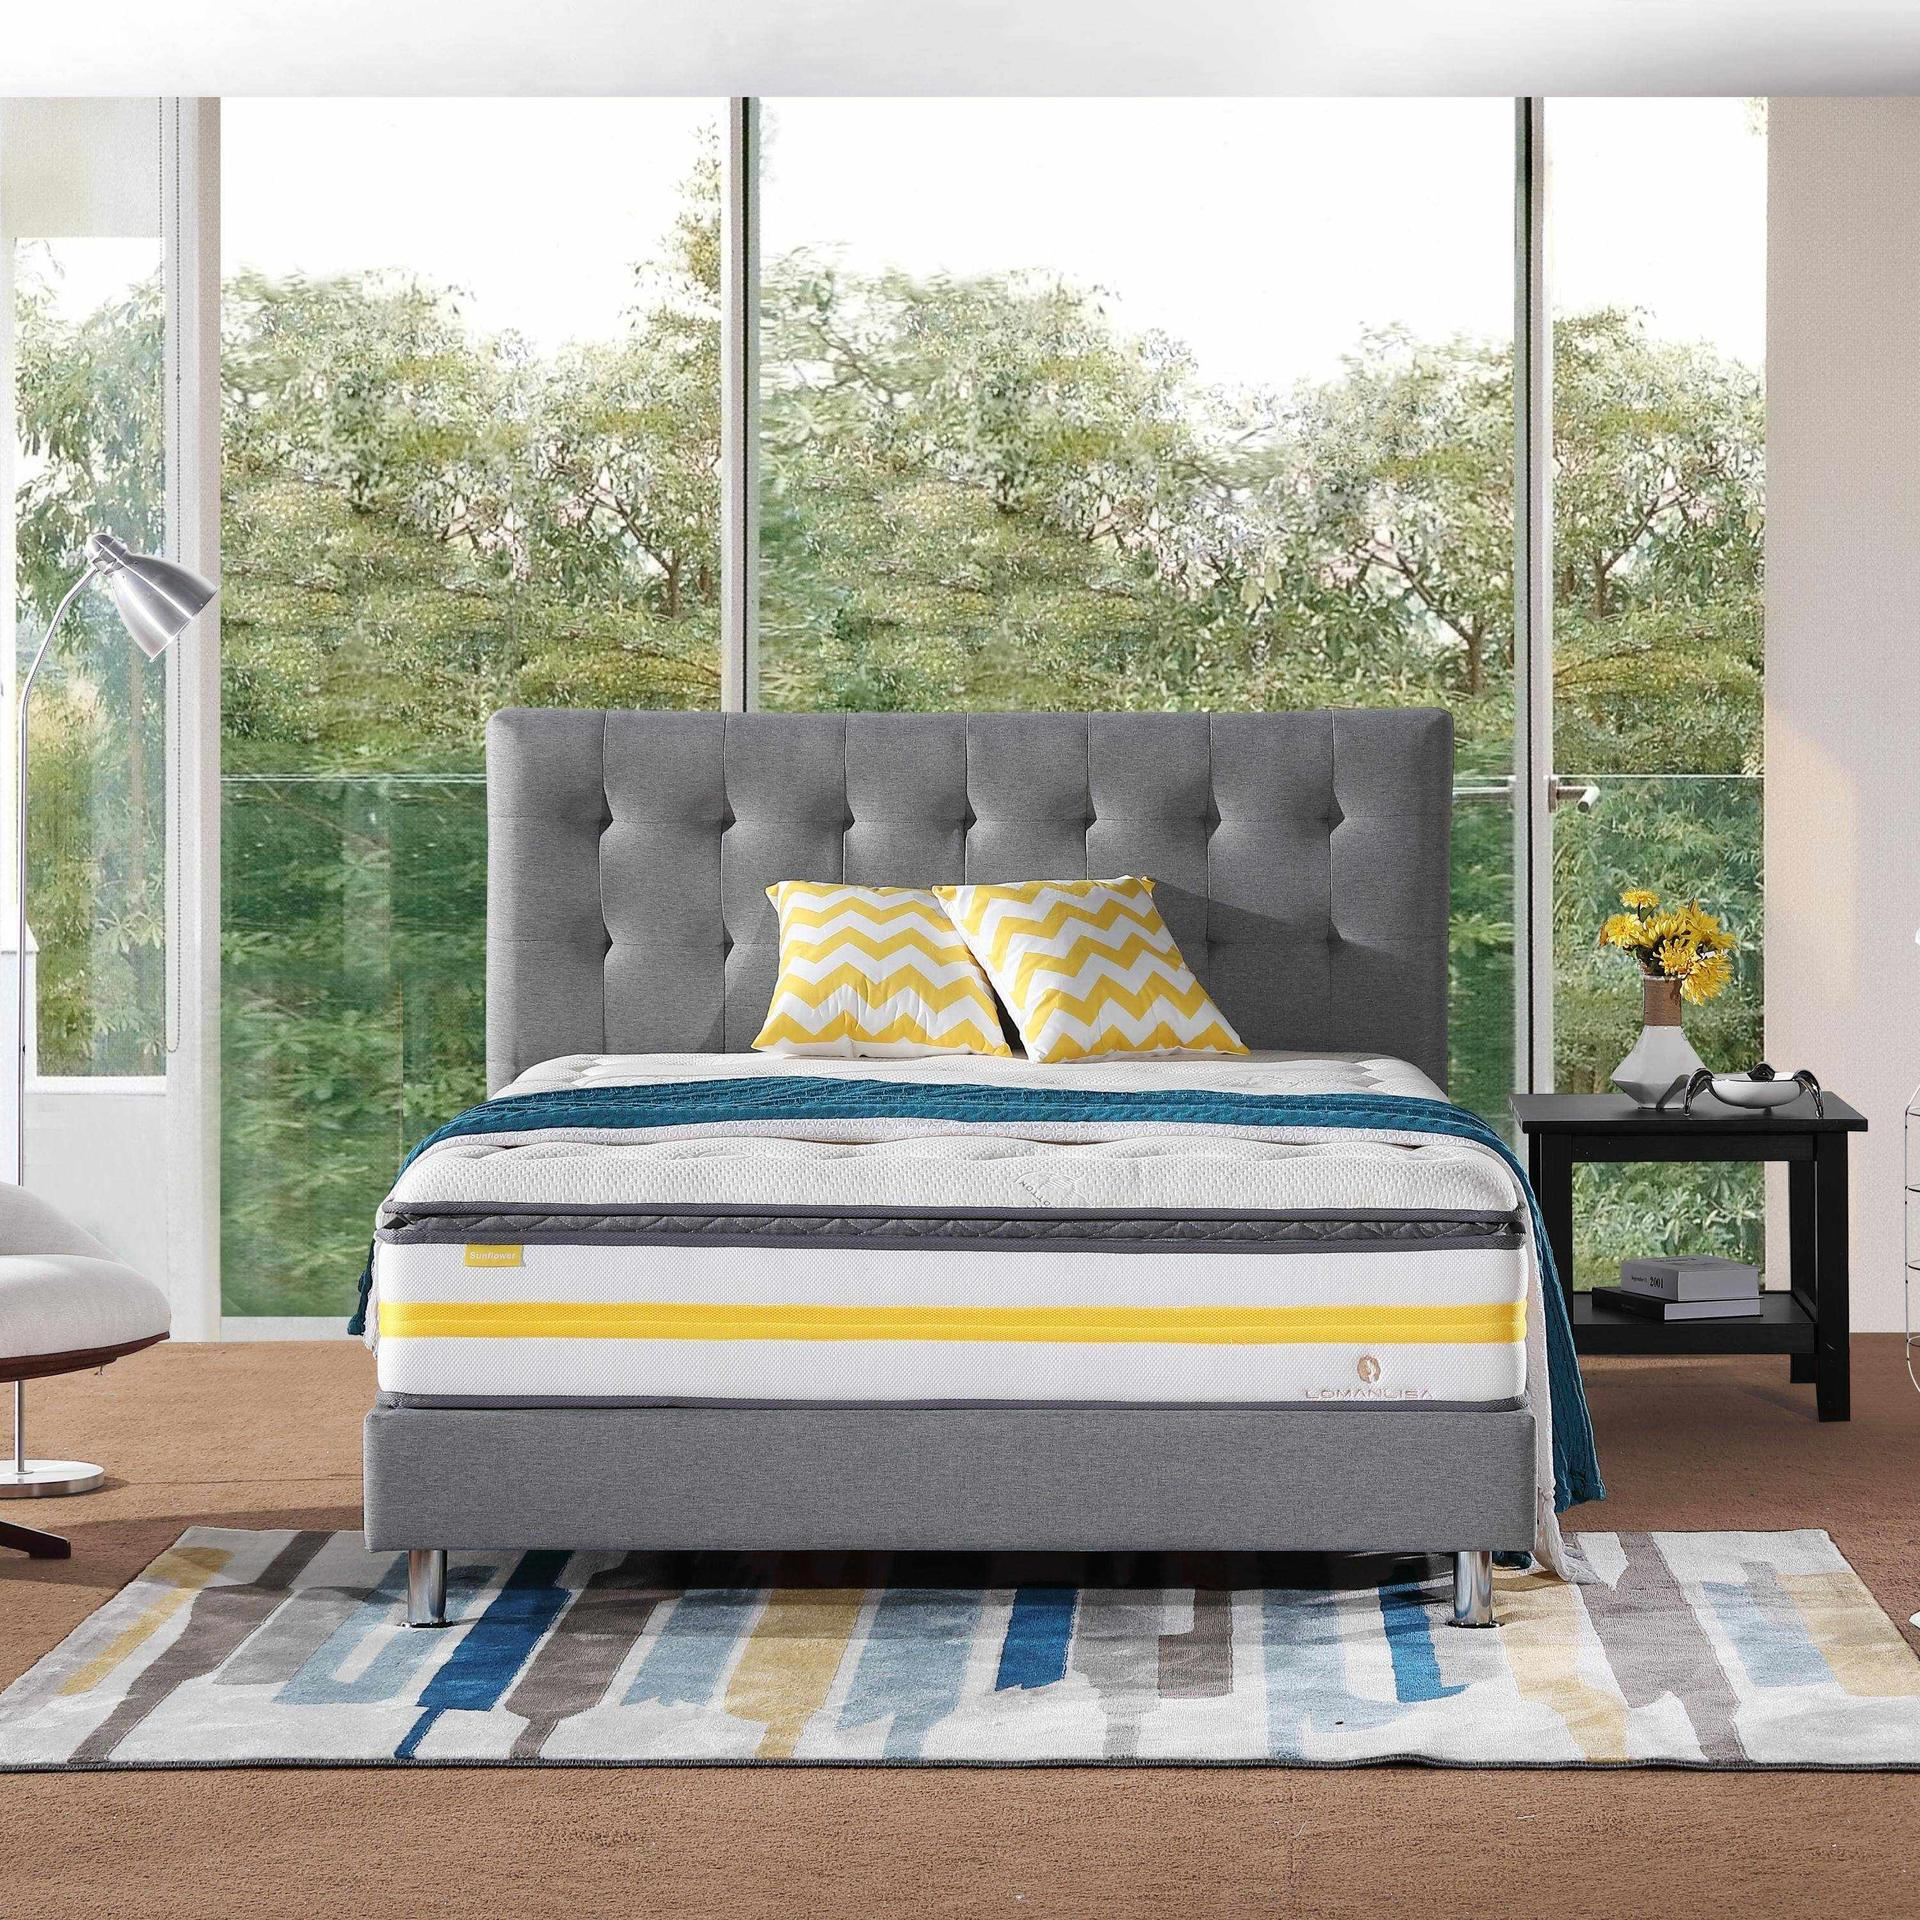 32PA-34 | Pillow Top Design Pocket Spring Mattress with Convoluted Foam Nature Fresh Series